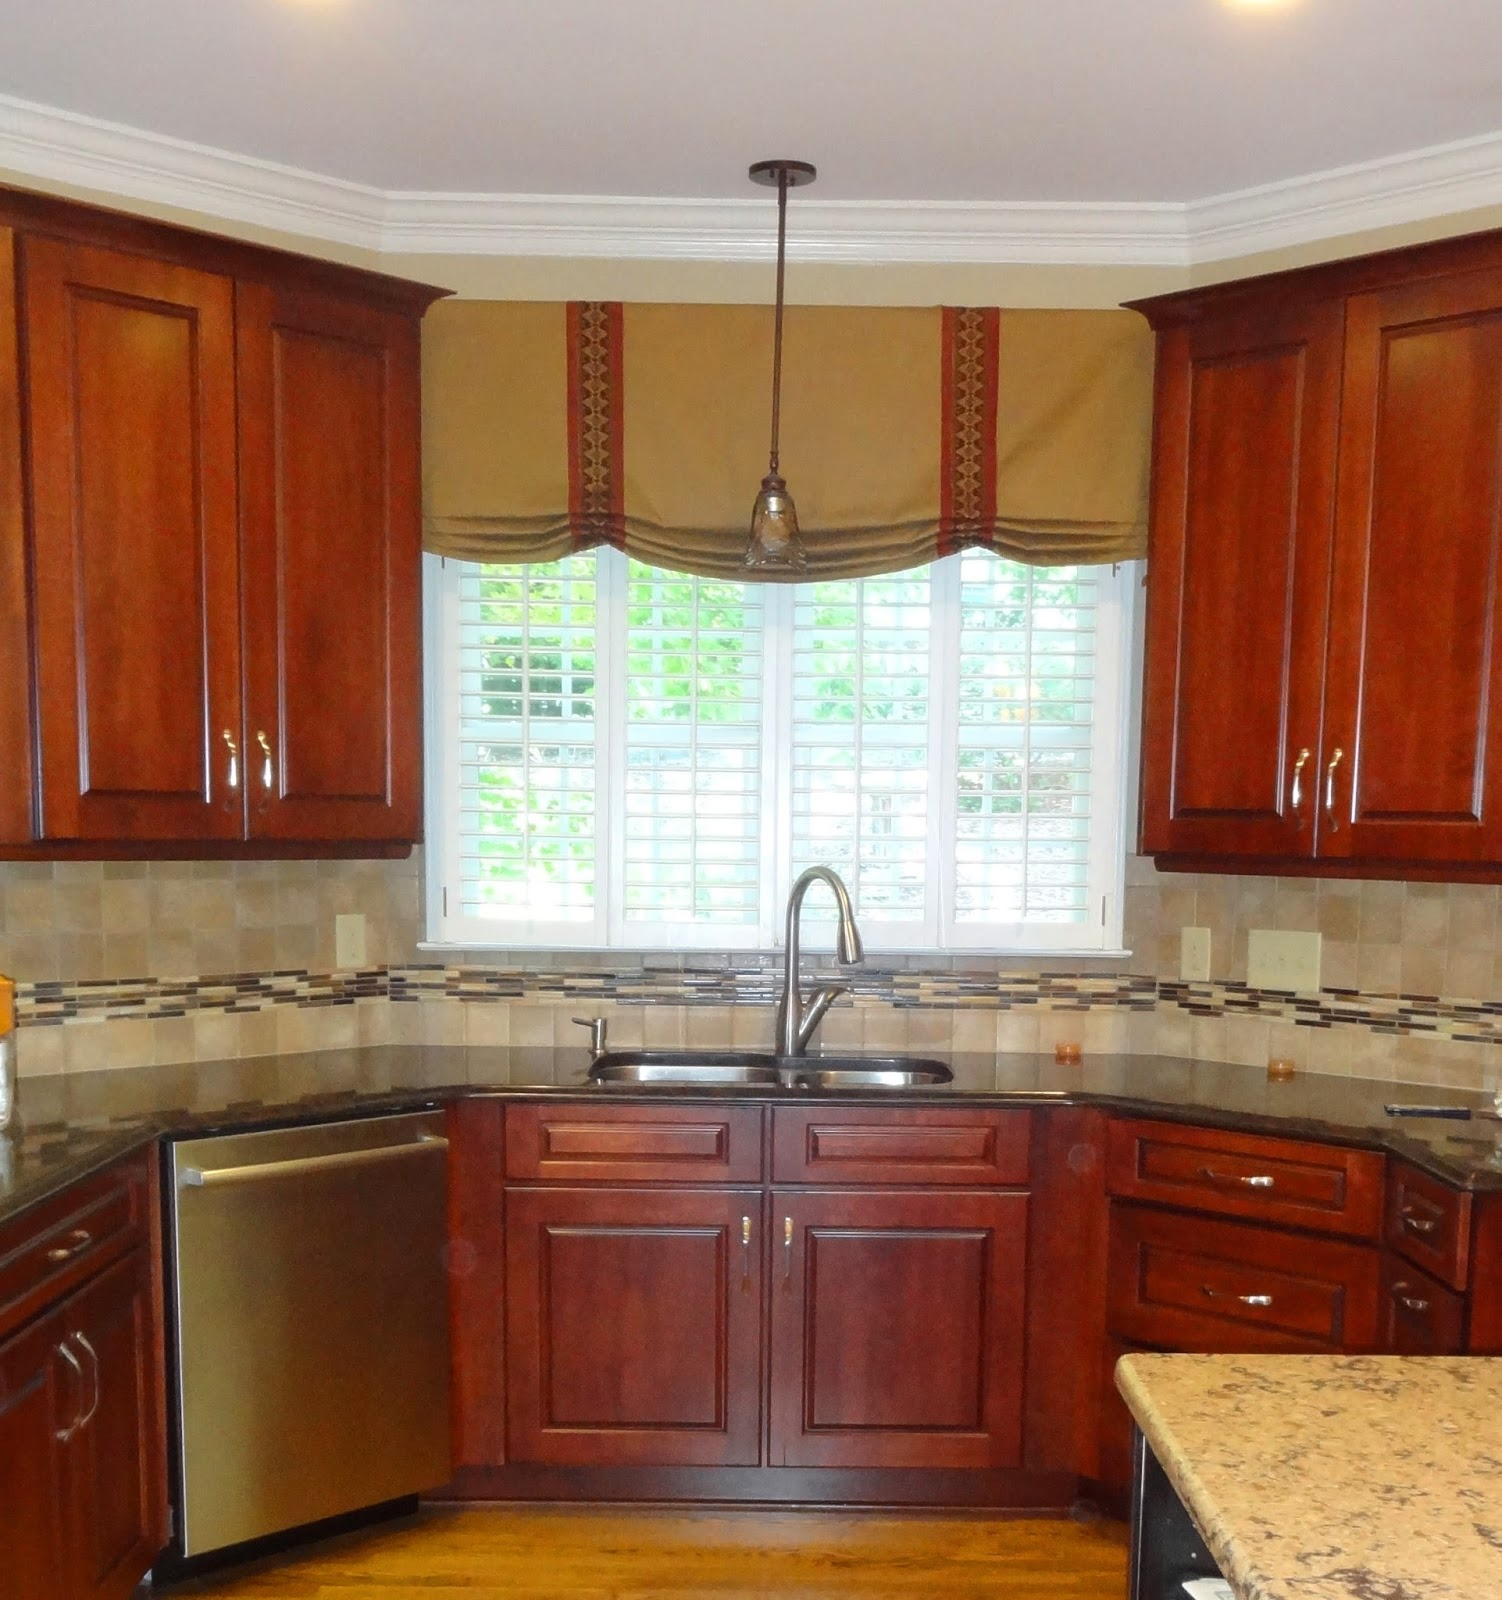 Kitchen Window Valances Image Of Valances For Kitchen Windows - Kitchen window treatment ideas